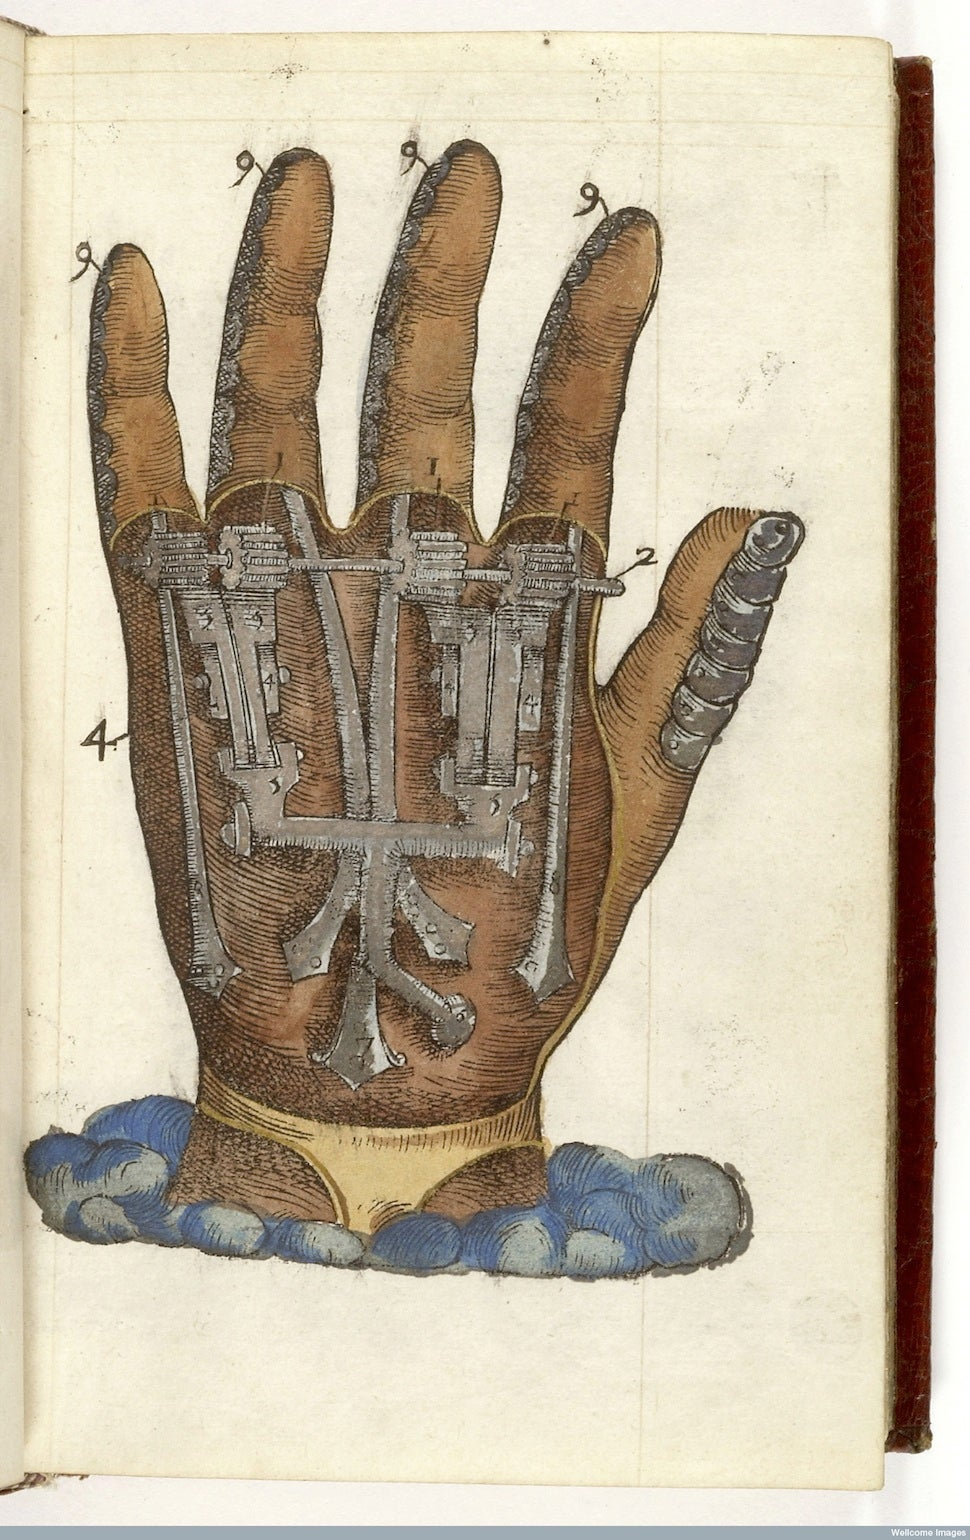 cutaway of a hand with metal workings shown inside